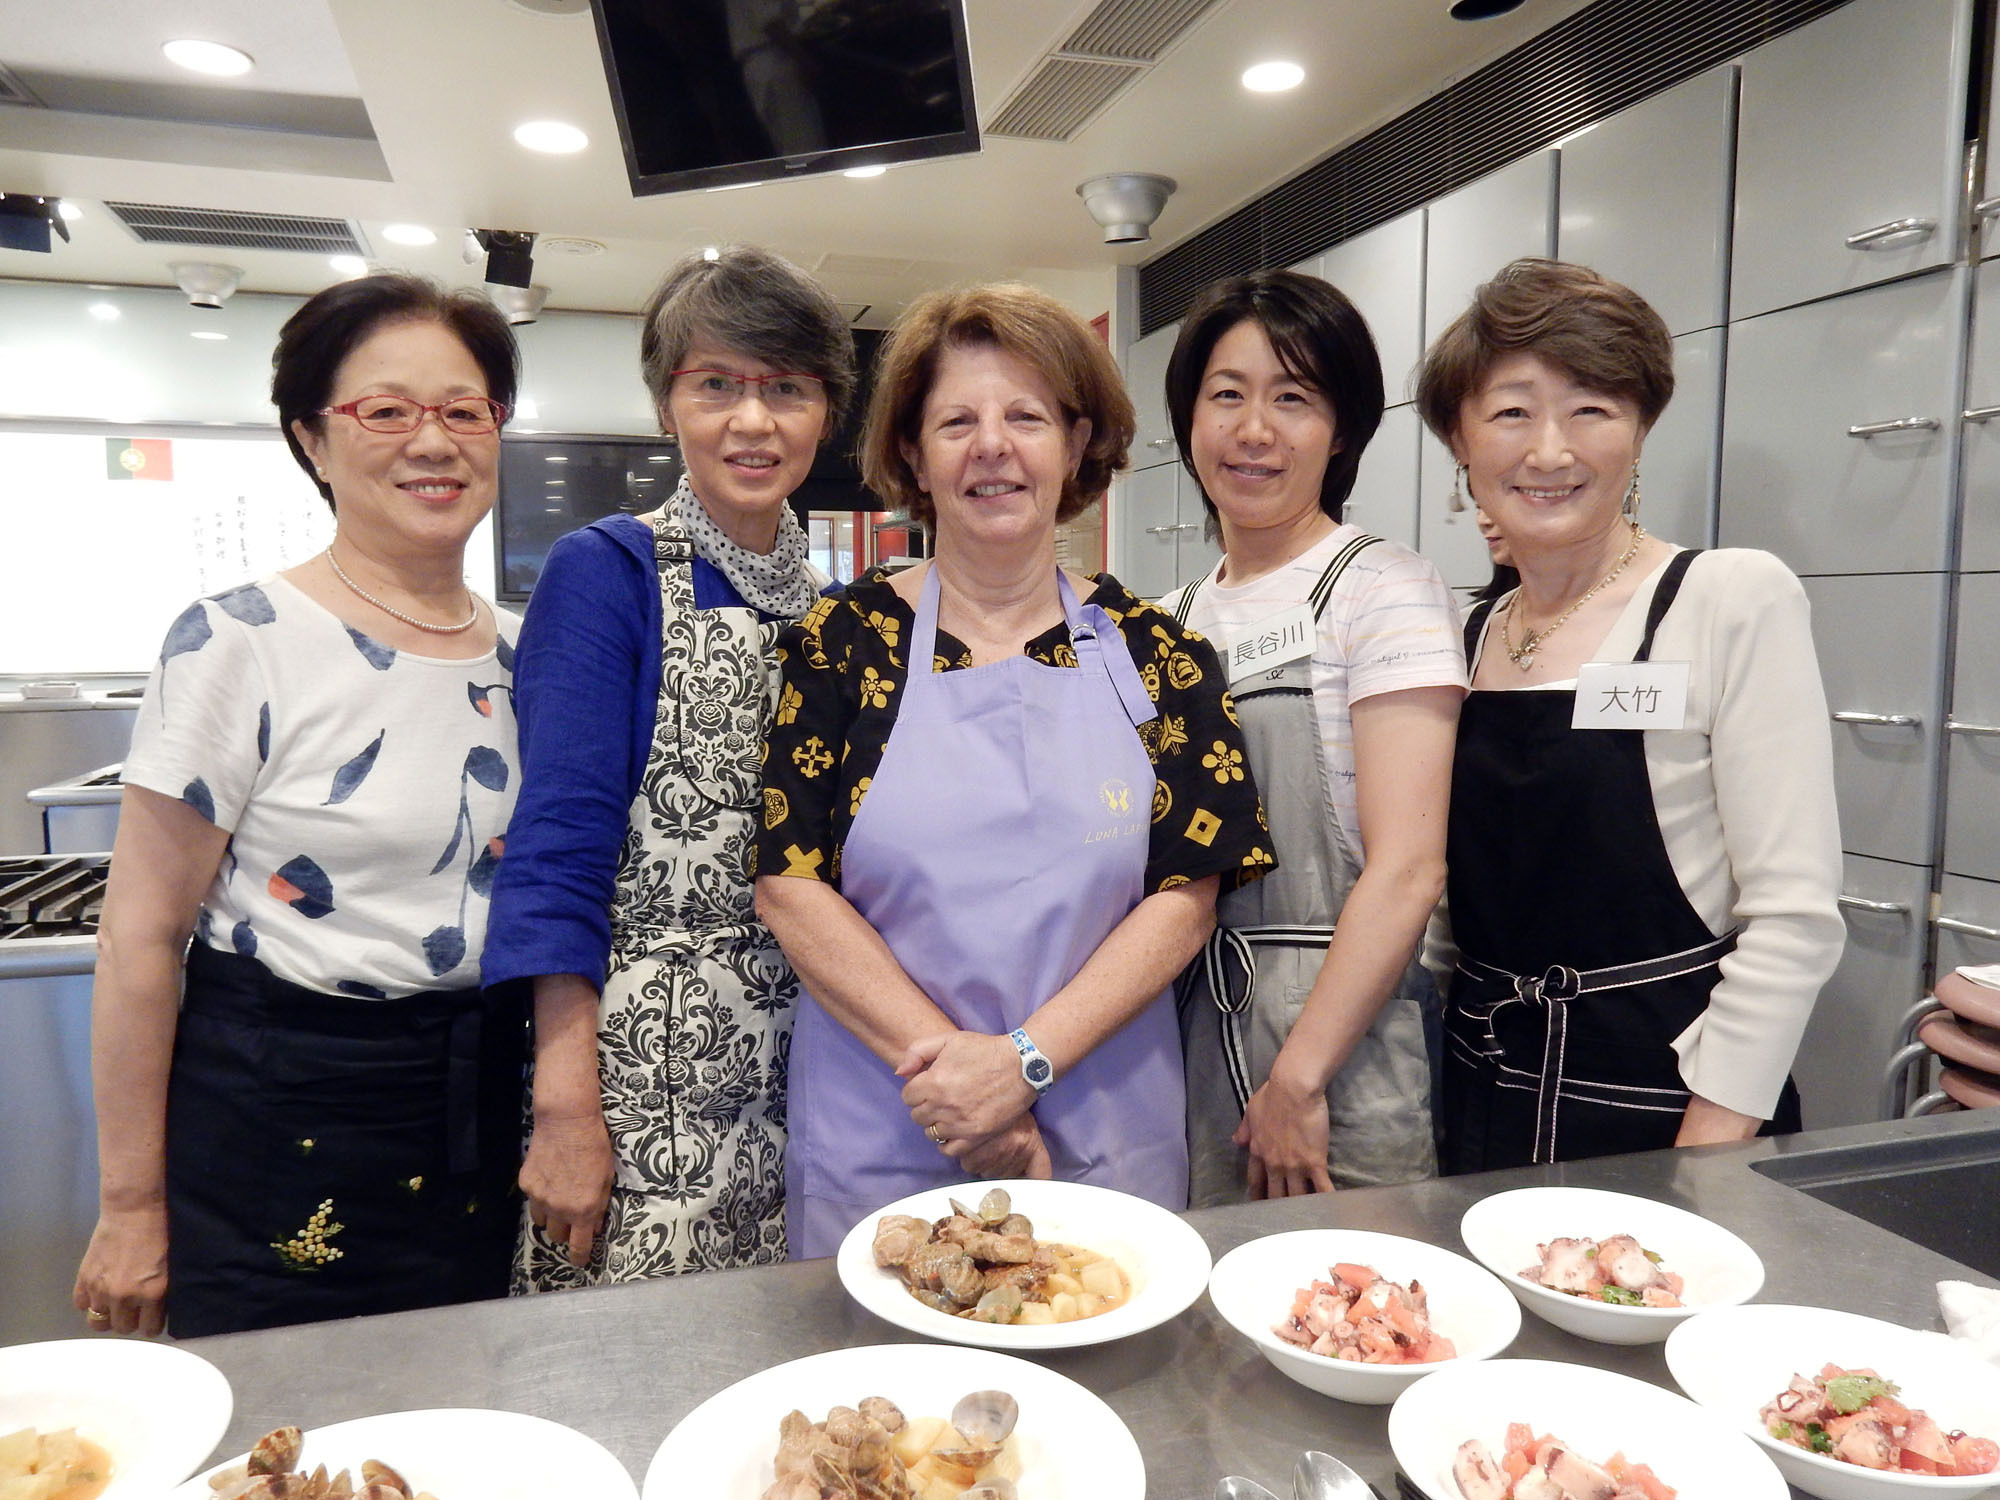 Ilda Esteves (center), the wife of Portugal's ambassador, poses with students during a Portuguese culinary lesson at Hattori Nutrition College in Tokyo on Oct. 1. | MAKI-YAMAMOTO-ARAKAWA